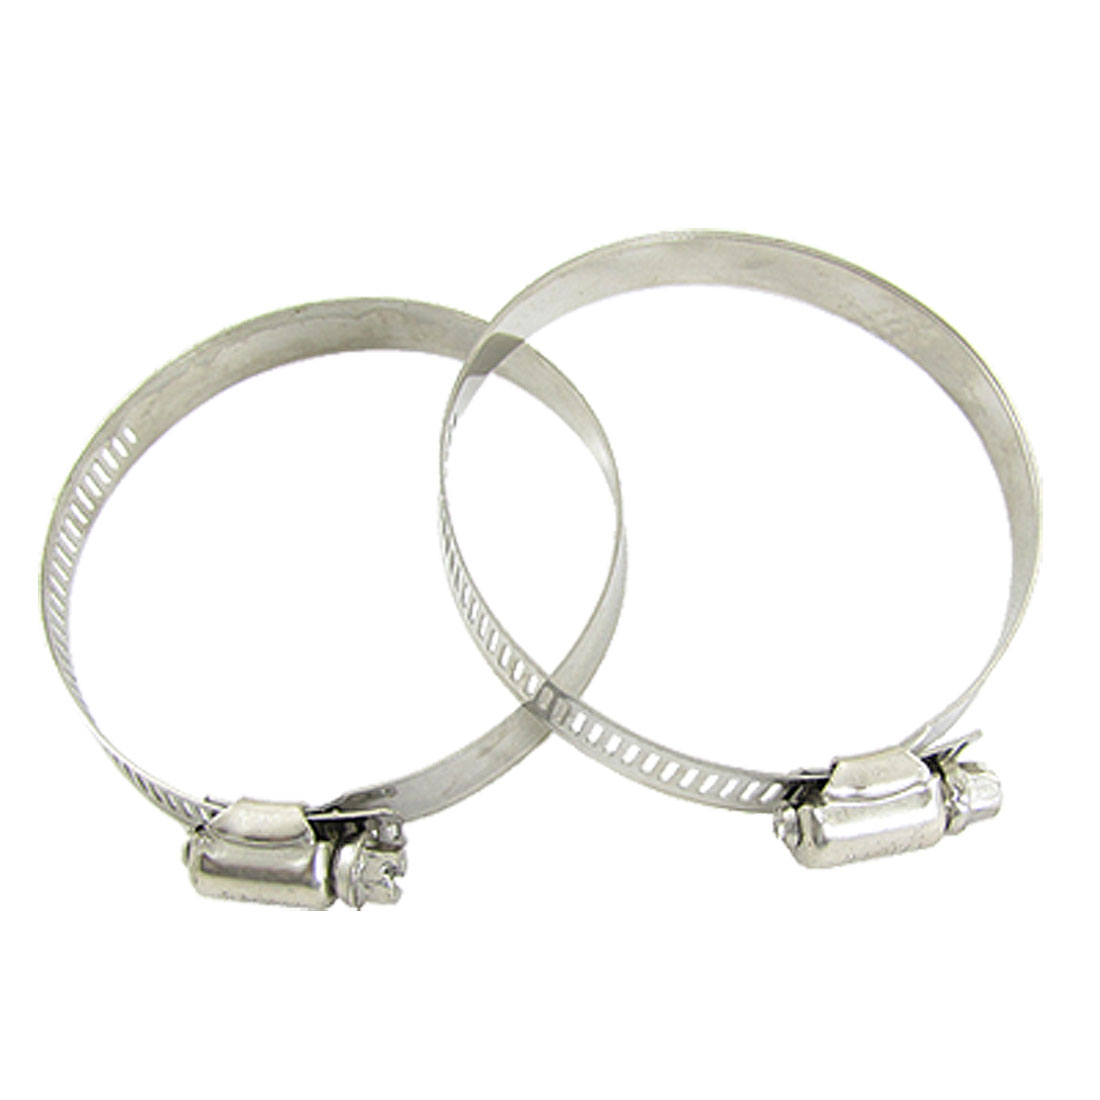 Fuel Injection Gas Water Pipe Hose Clamps 78-101mm Hoop 2 Pcs